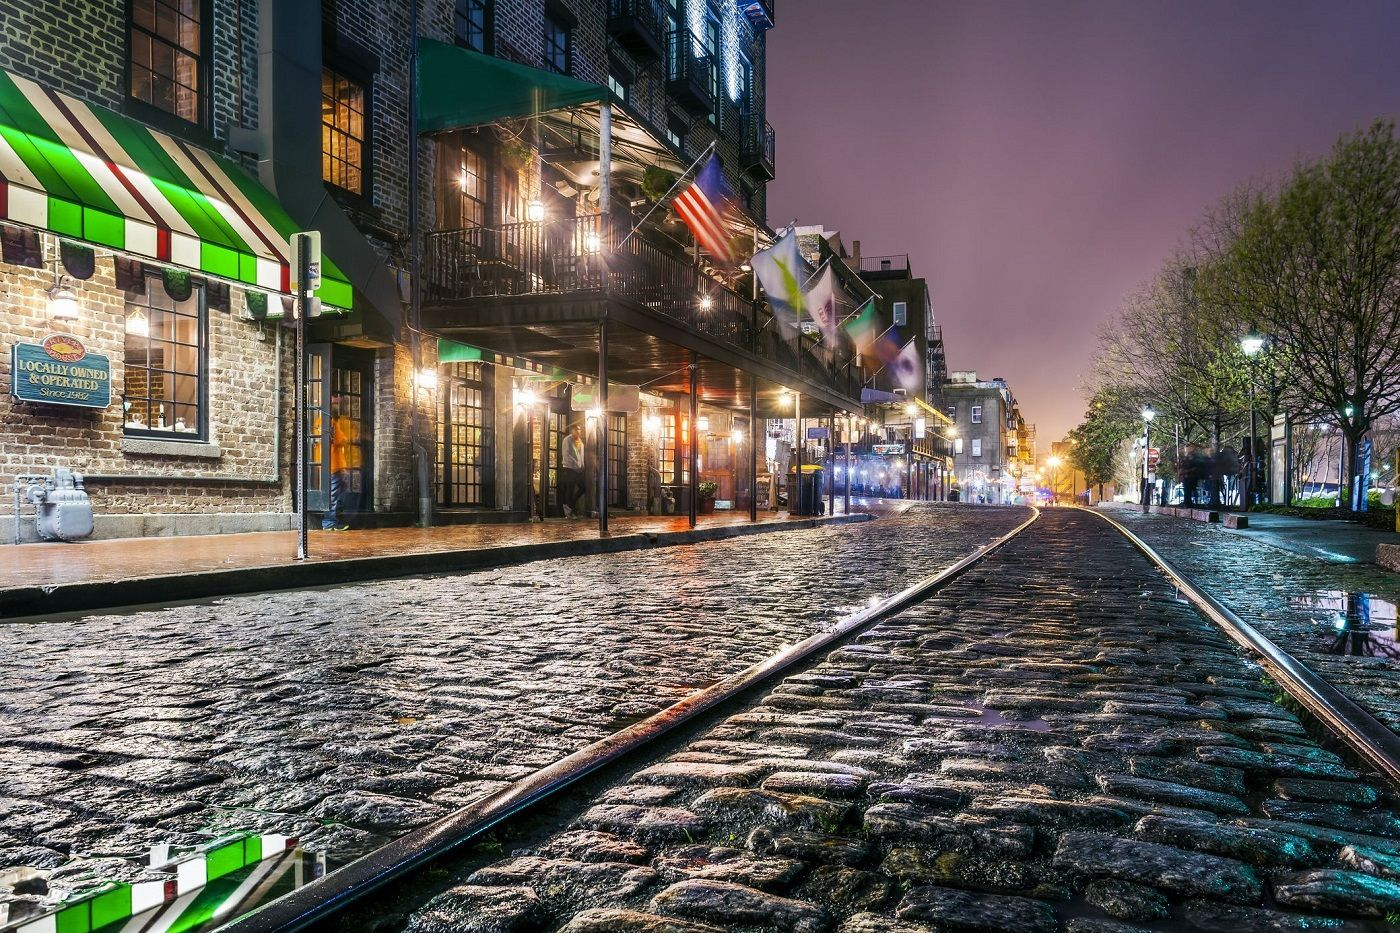 ga-ghosts-of-savannah-tour-1--haunted-journeys